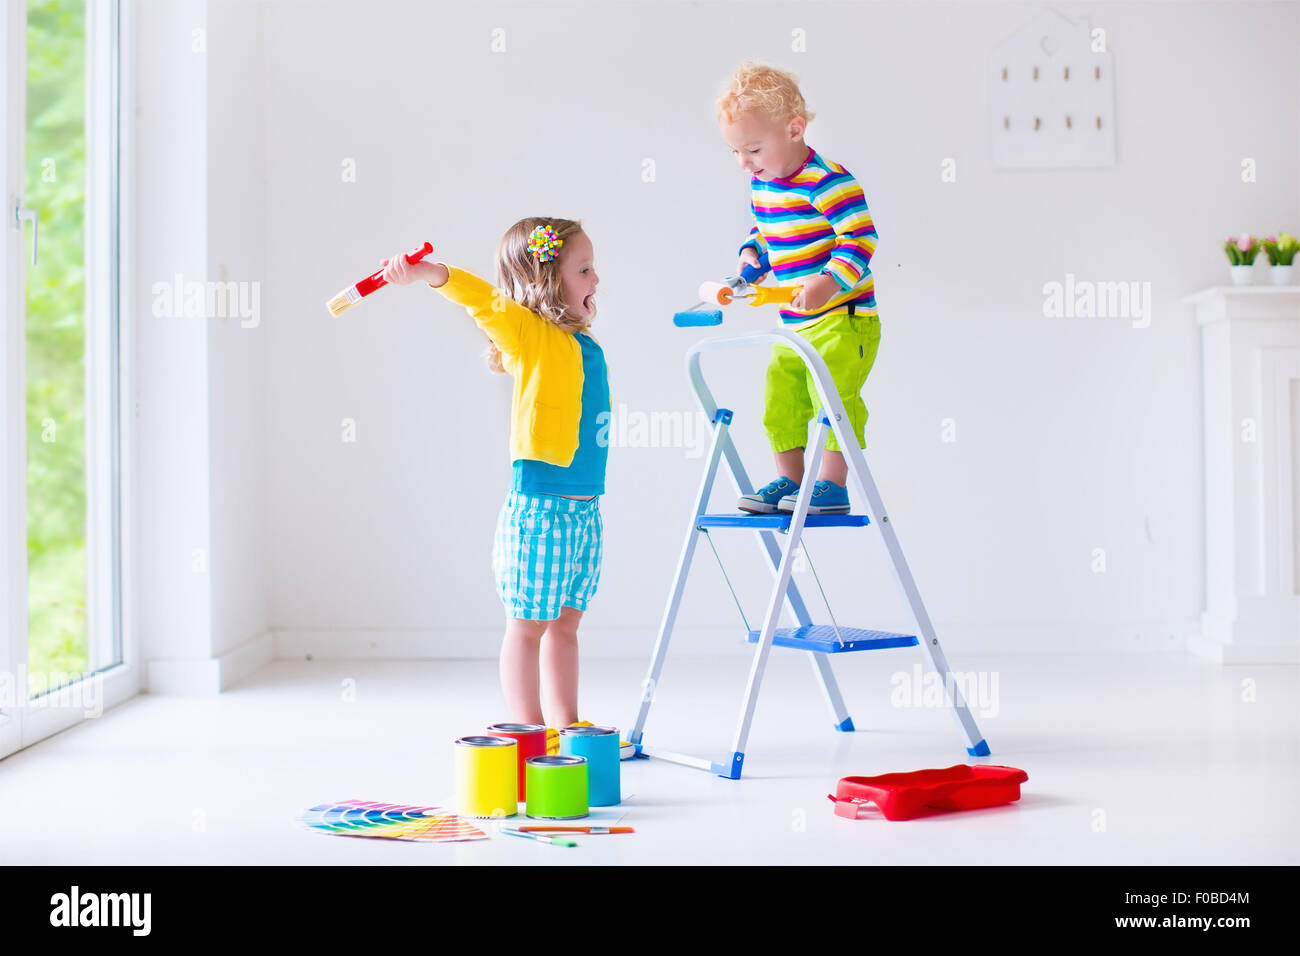 Family Remodeling House Home Remodel And Renovation Kids Painting Walls With Colorful Brush Roller